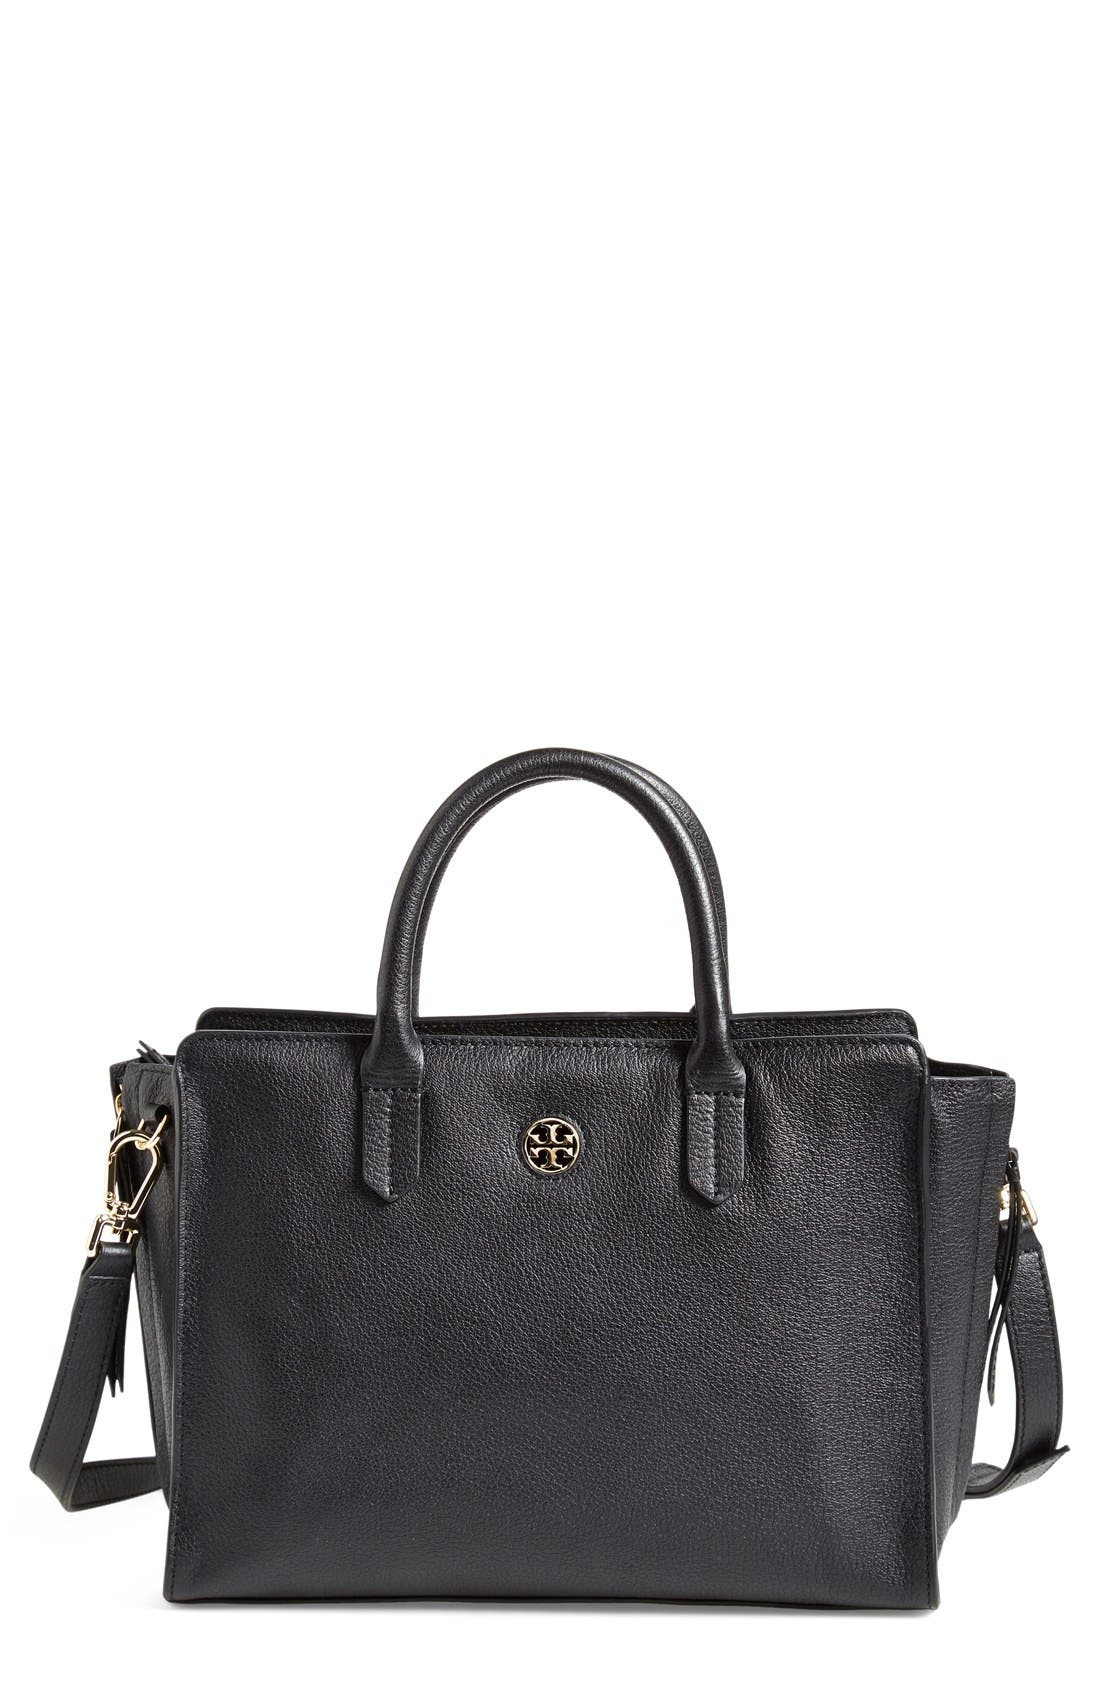 Main Image - Tory Burch 'Small Brody' Tote